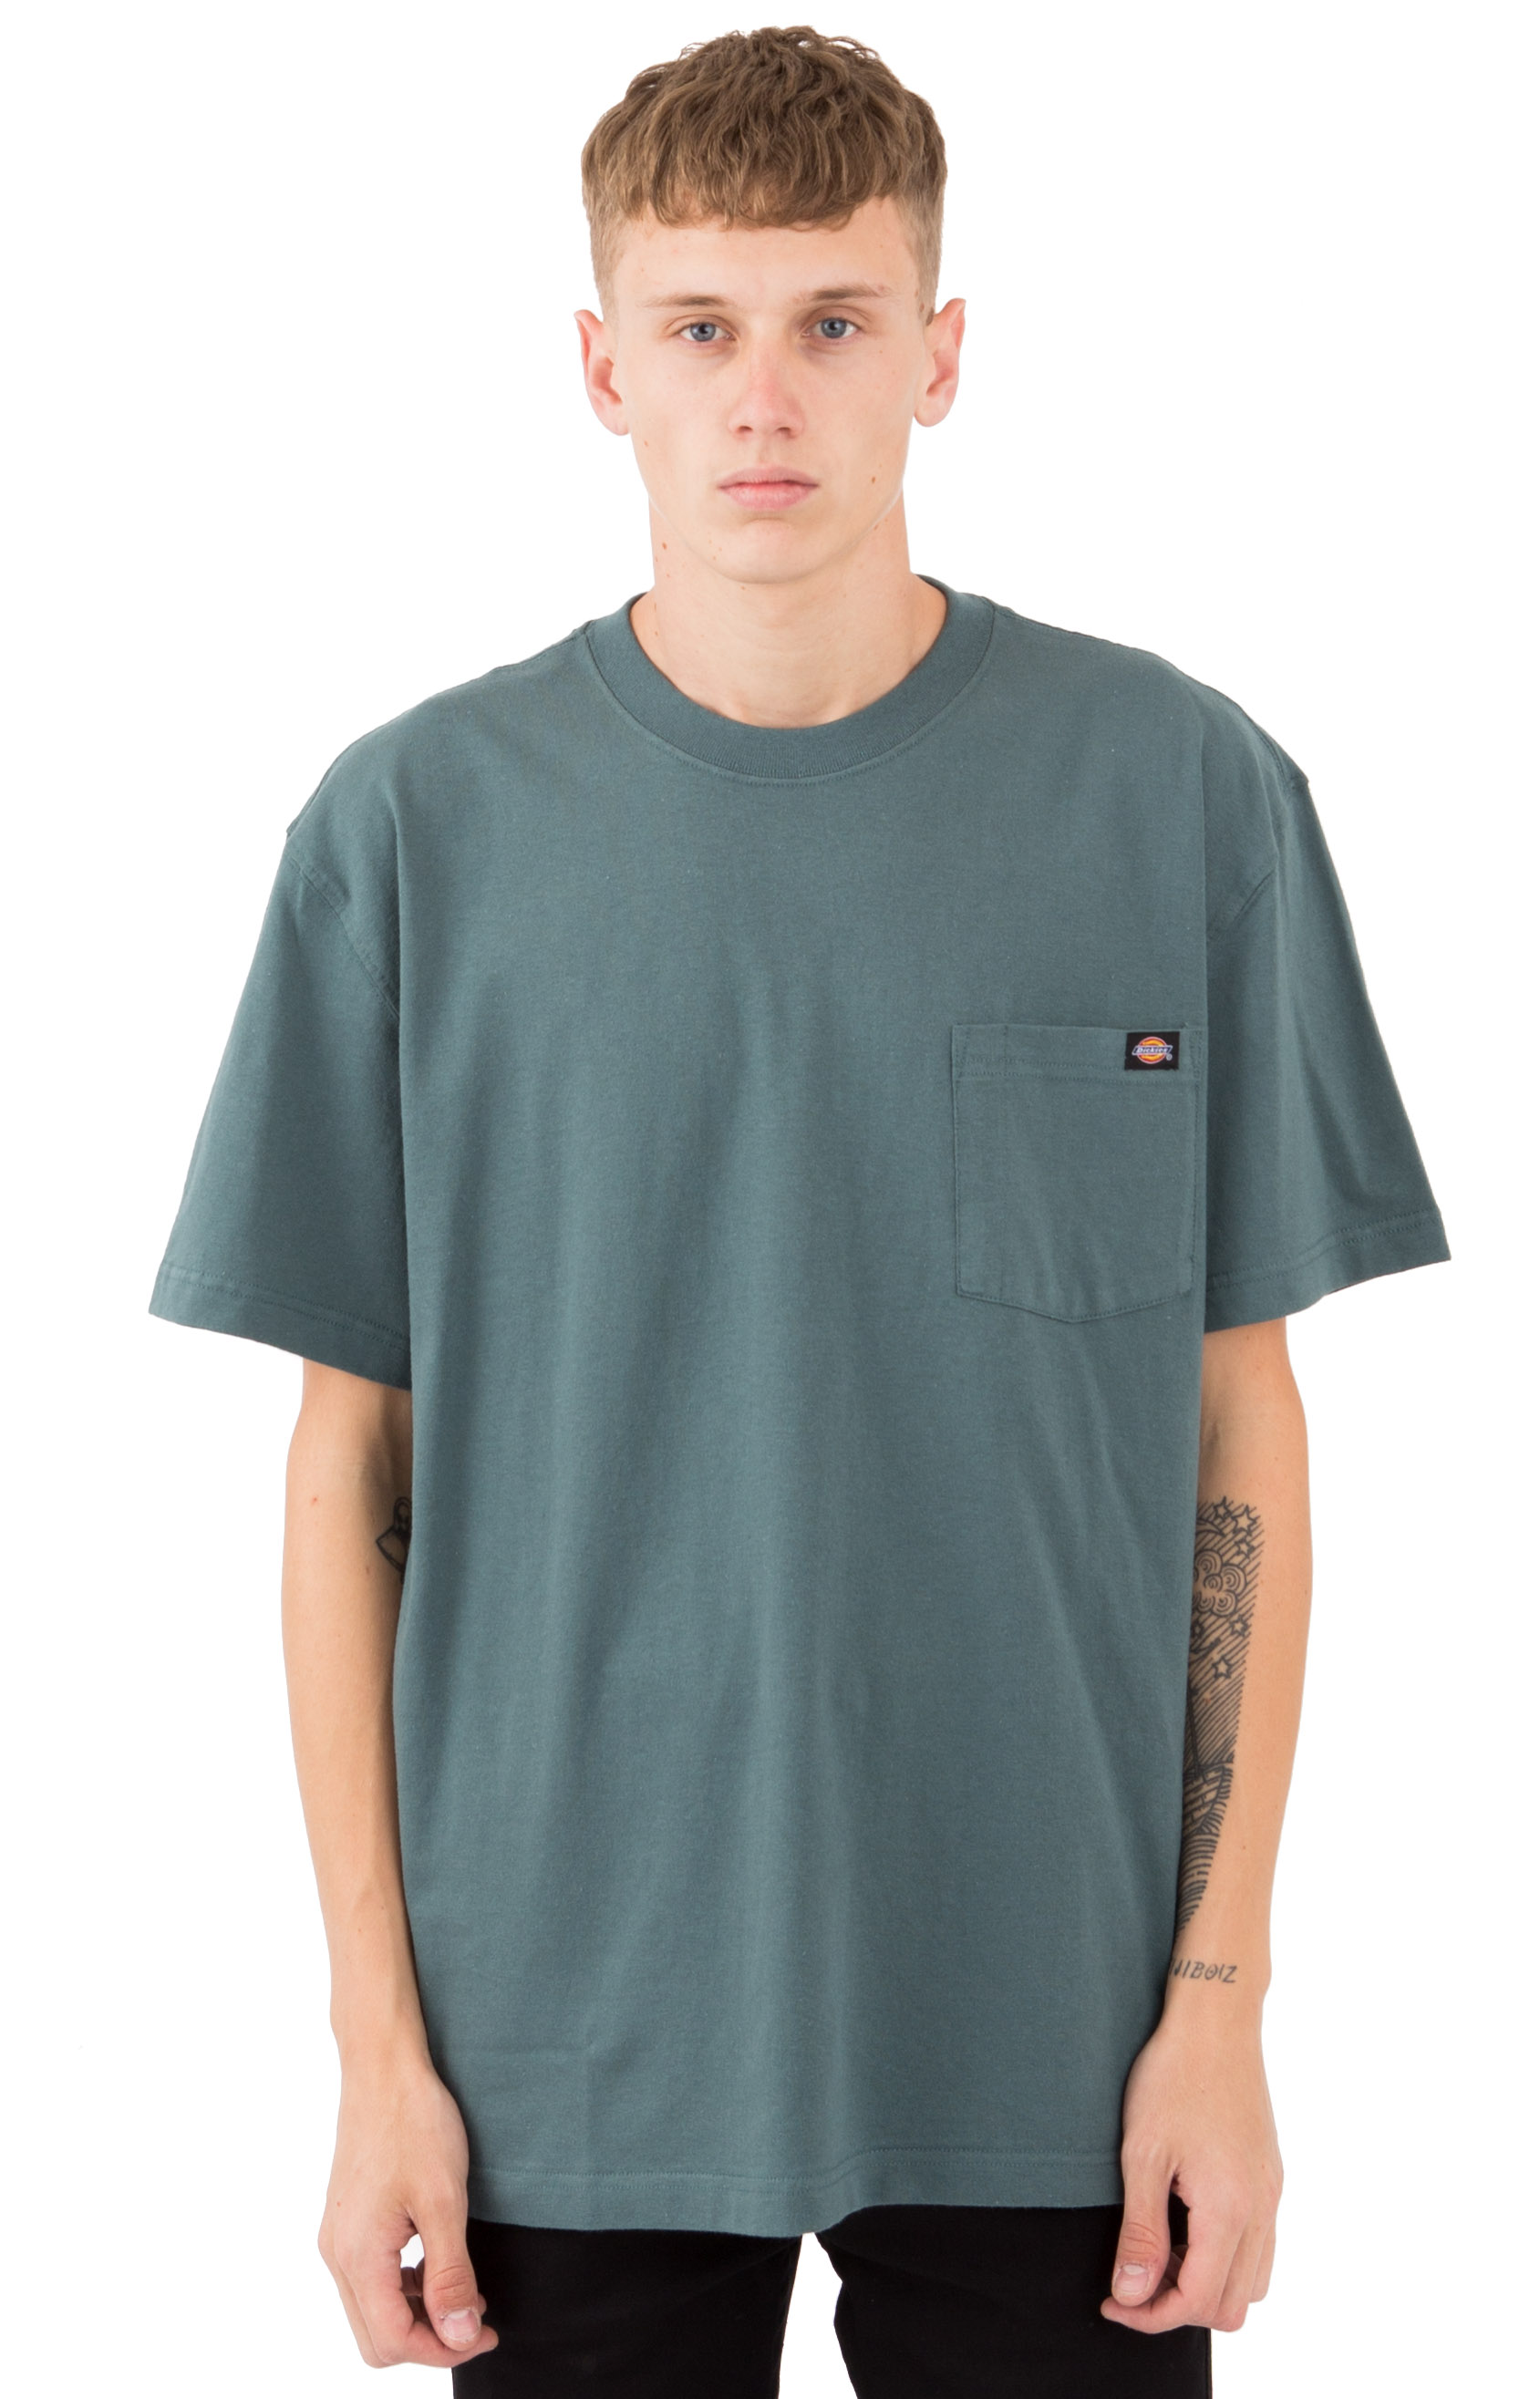 (WS450LN) Short Sleeve Heavyweight T-Shirt - Lincoln Green